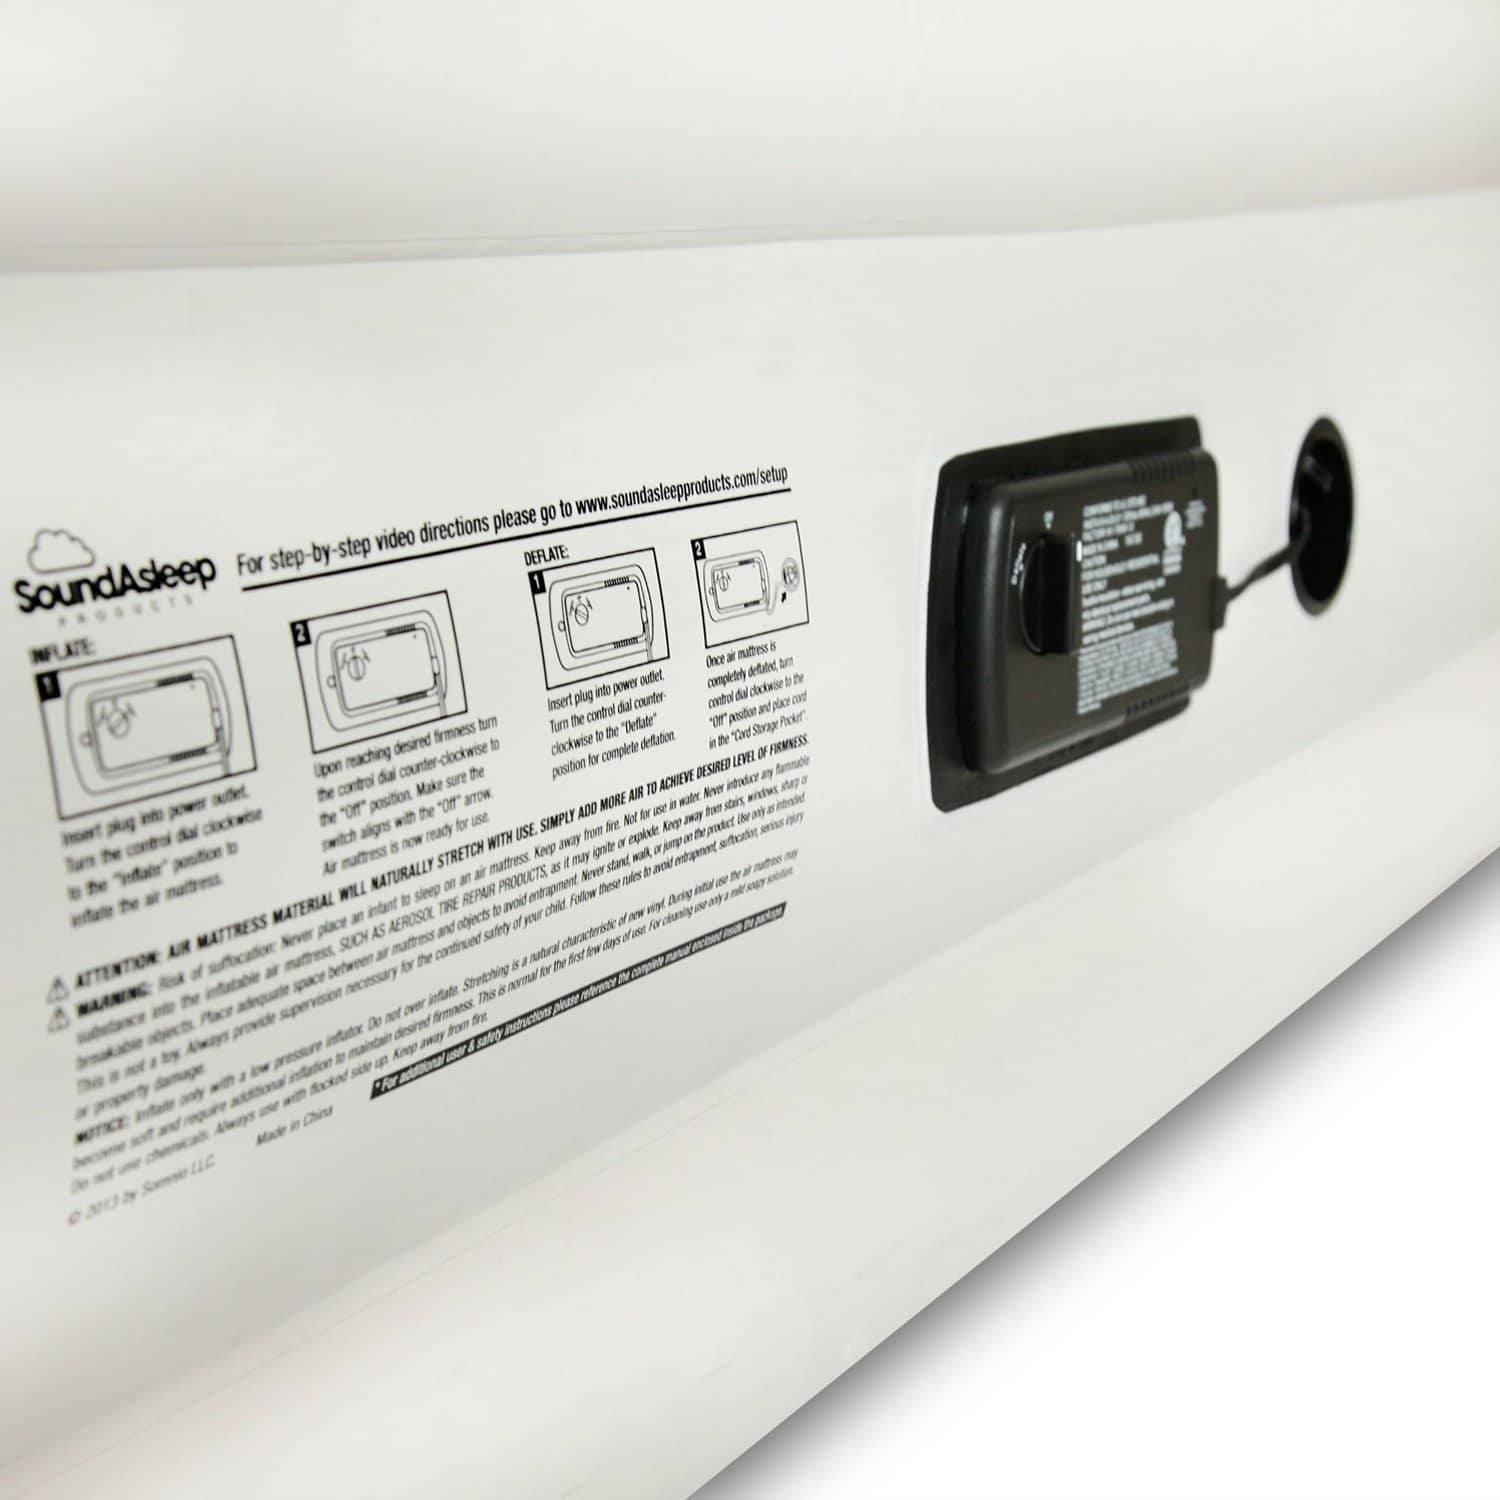 Built-in pump for air bed